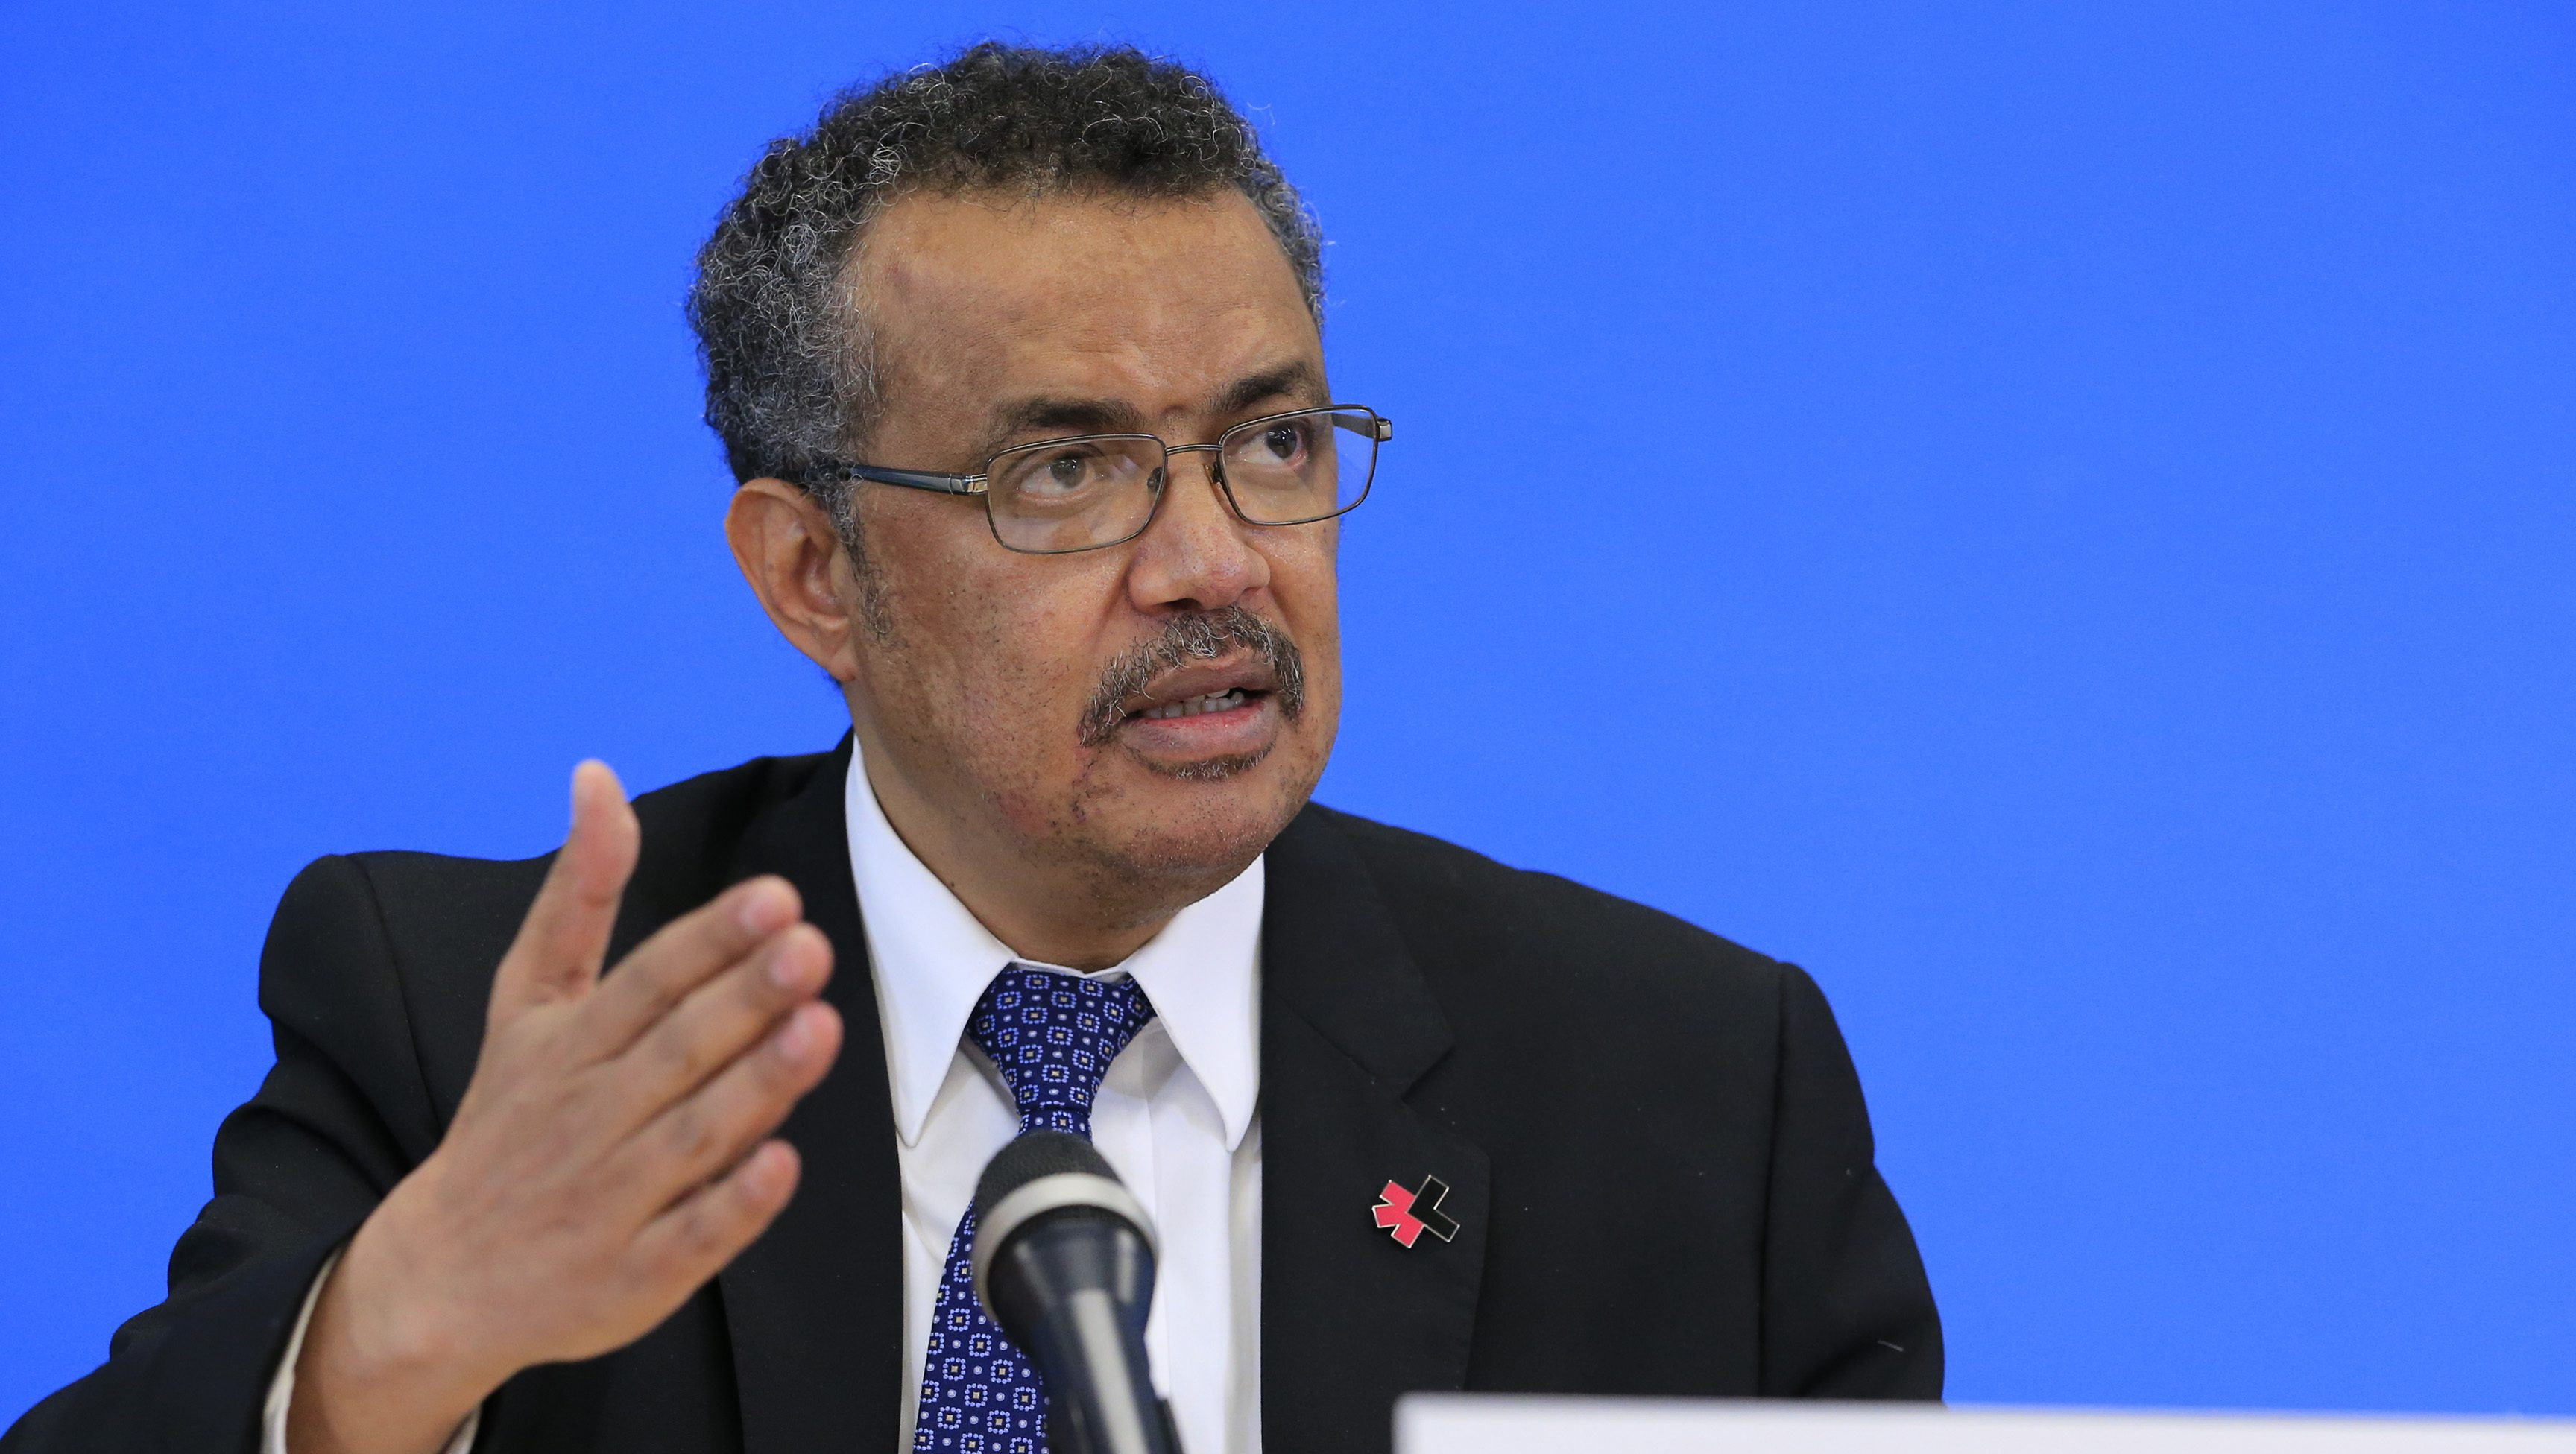 Tedros Adhanom Ghebreyesus, candidate for Director General of the World Health Organisation, attends a news conference at WHO headquarters in Geneva, Switzerland, January 26, 2017.